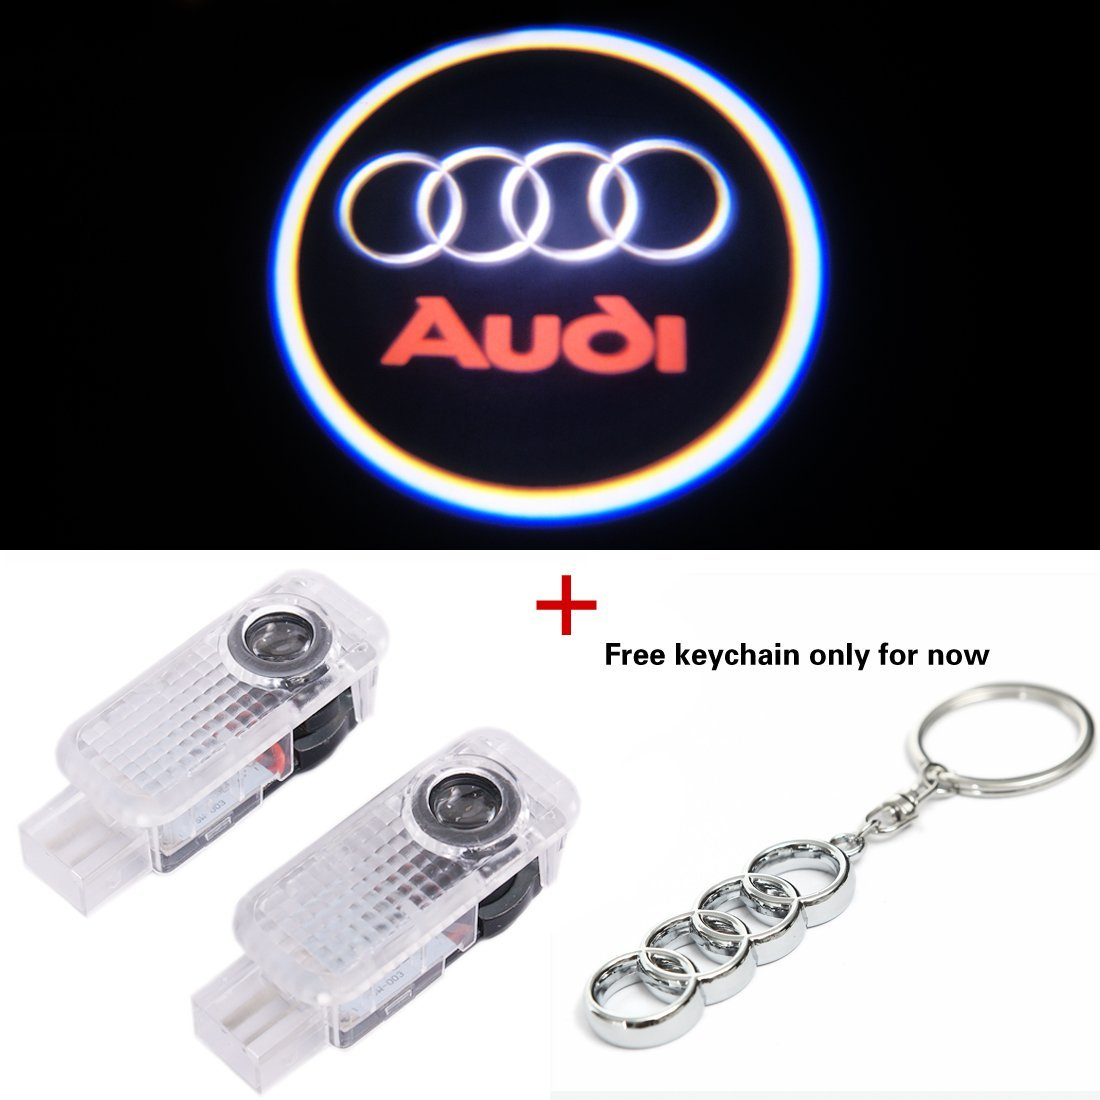 BAILONGJU Easy Installation Car Door LED Logo Projector Ghost Shadow Lights compatible with Audi A4 A3 A6 Q7 Q5 A1 A5 TT A8 Q3 A7 R8 RS 2-pc Set